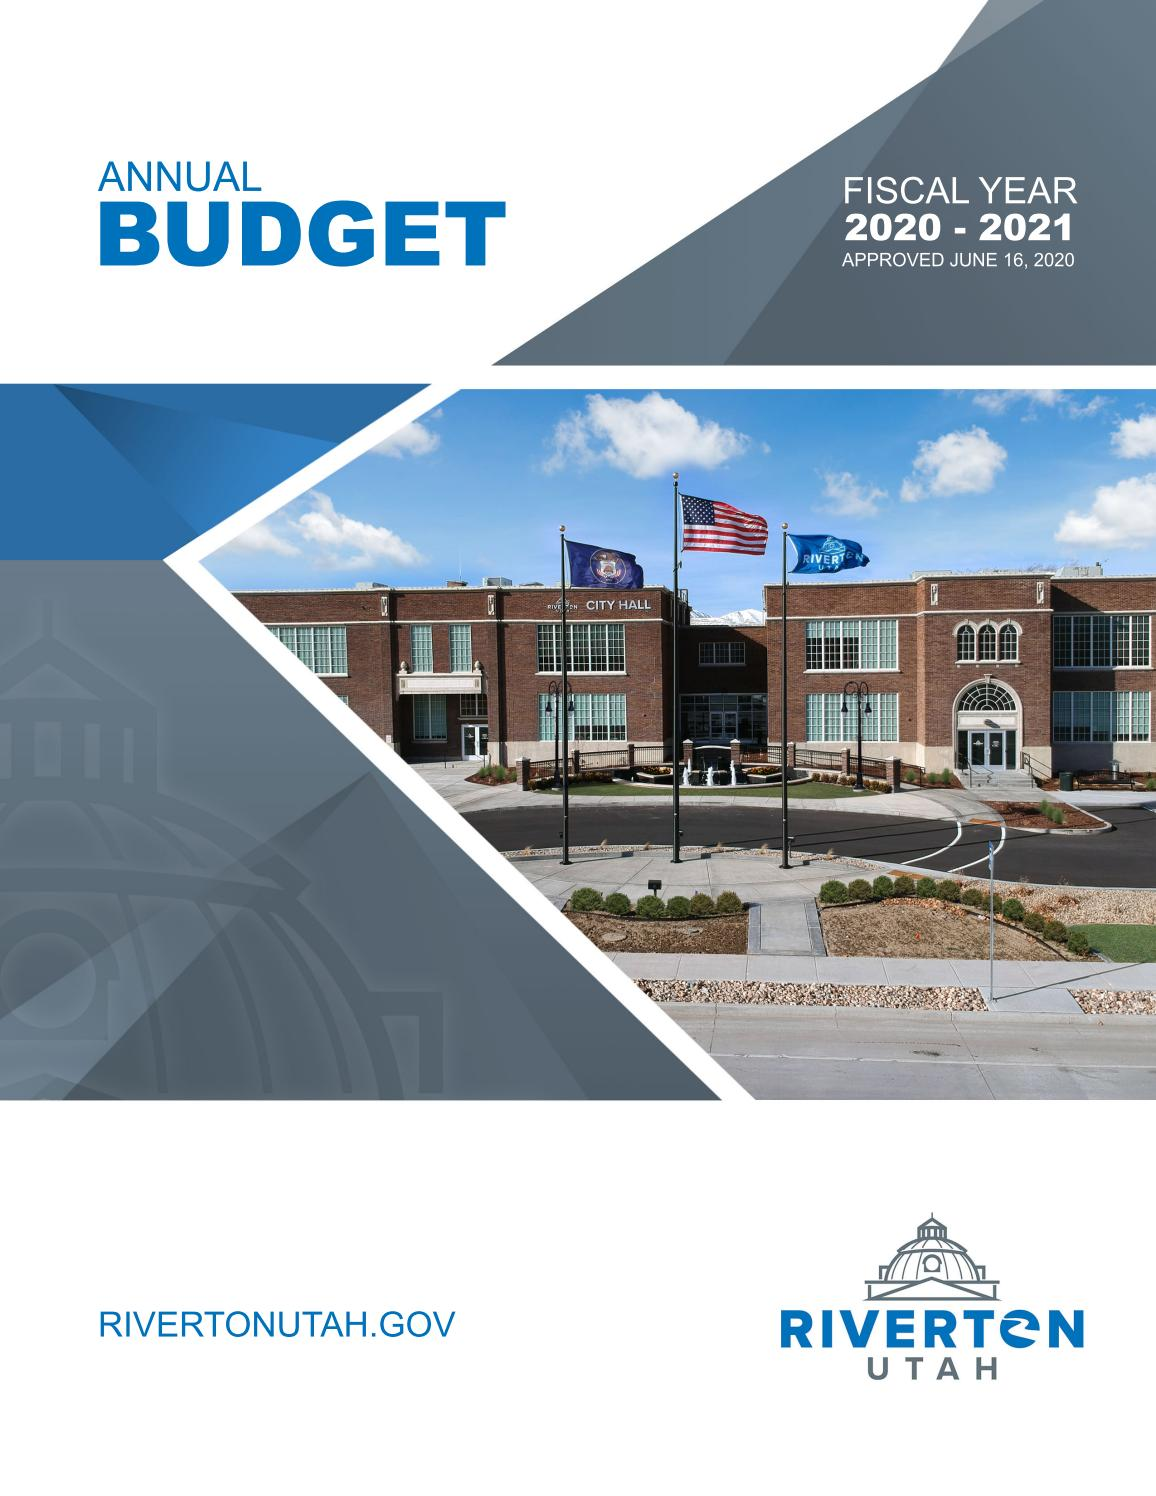 Riverton City Budget Fiscal Year 2020 2021 By Riverton Utah City Government Issuu